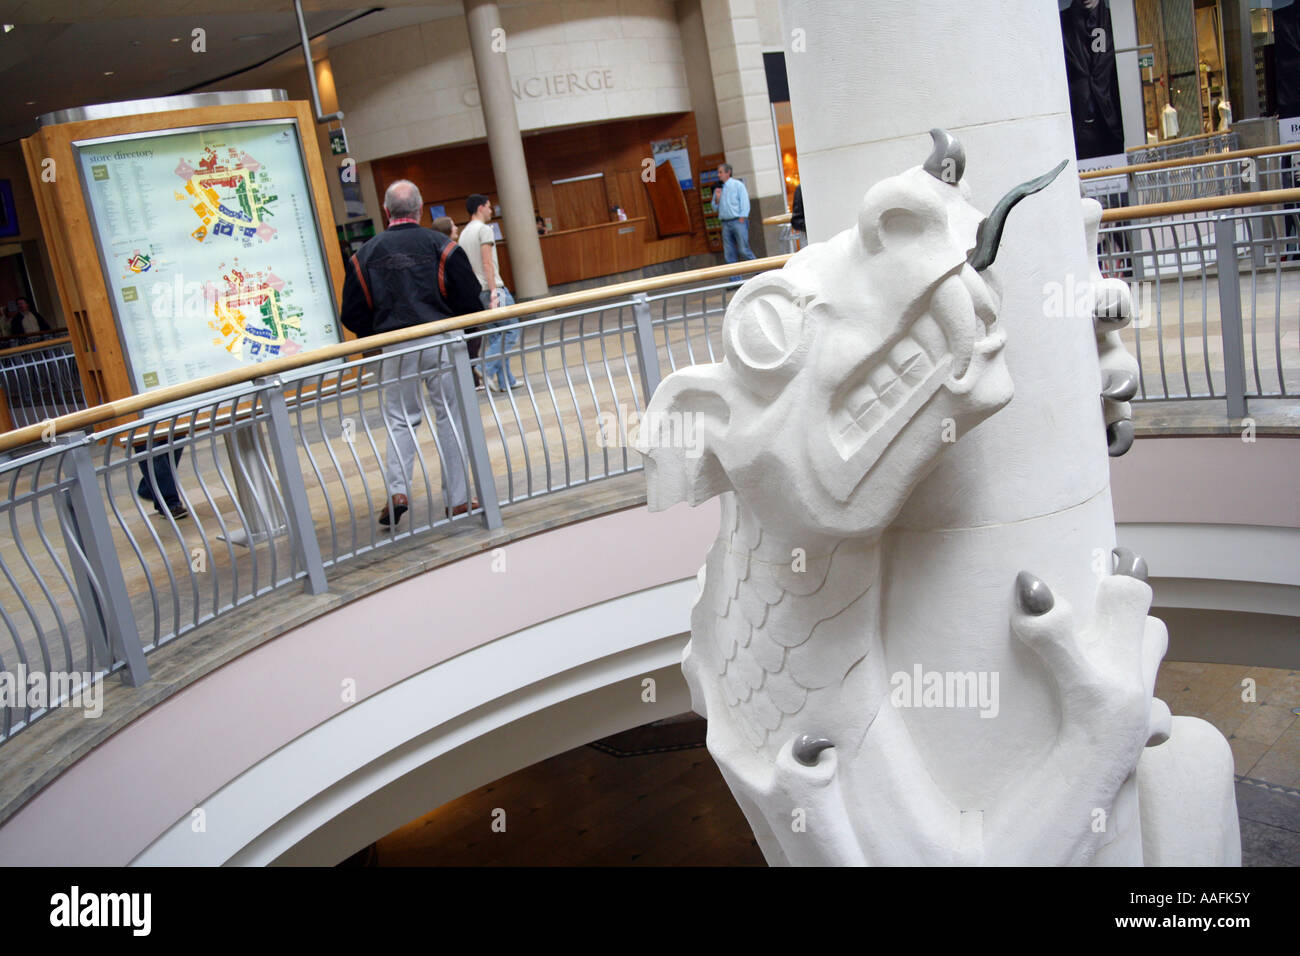 A dragon greets shoppers on two levels at the bluewater shopping